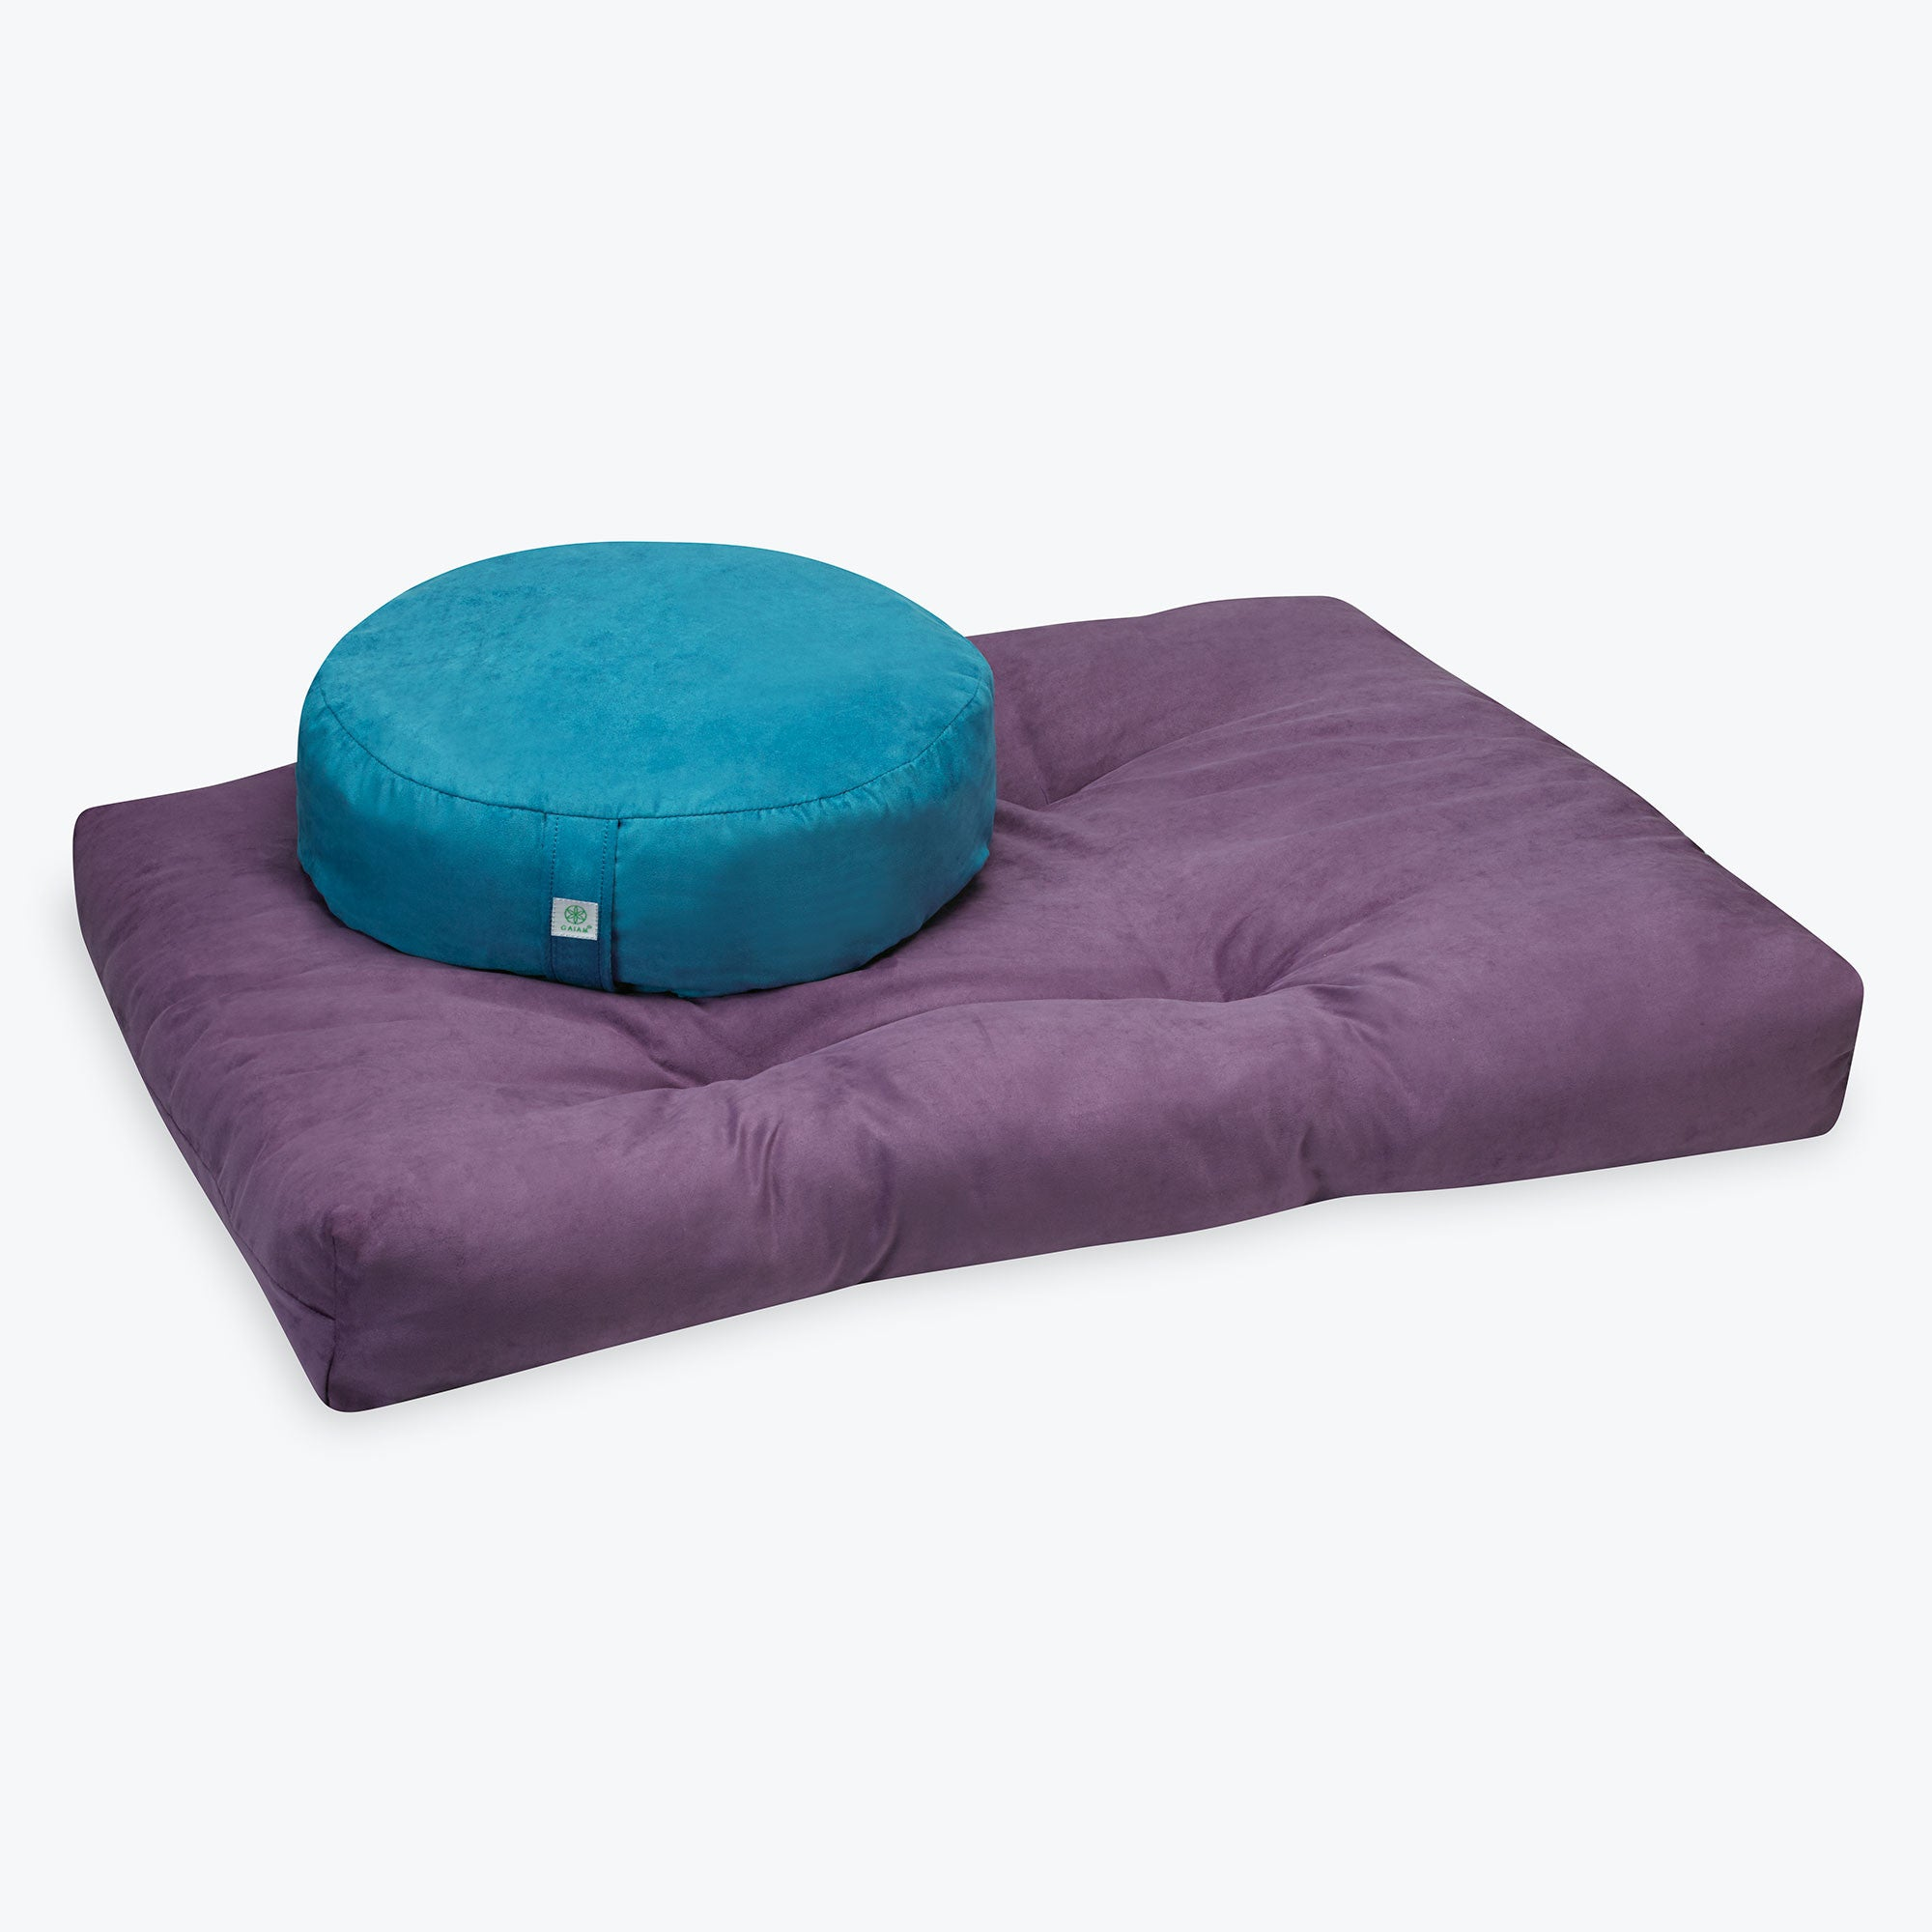 Zabuton Floor Cushions : Zabuton Floor Cushion - Gaiam